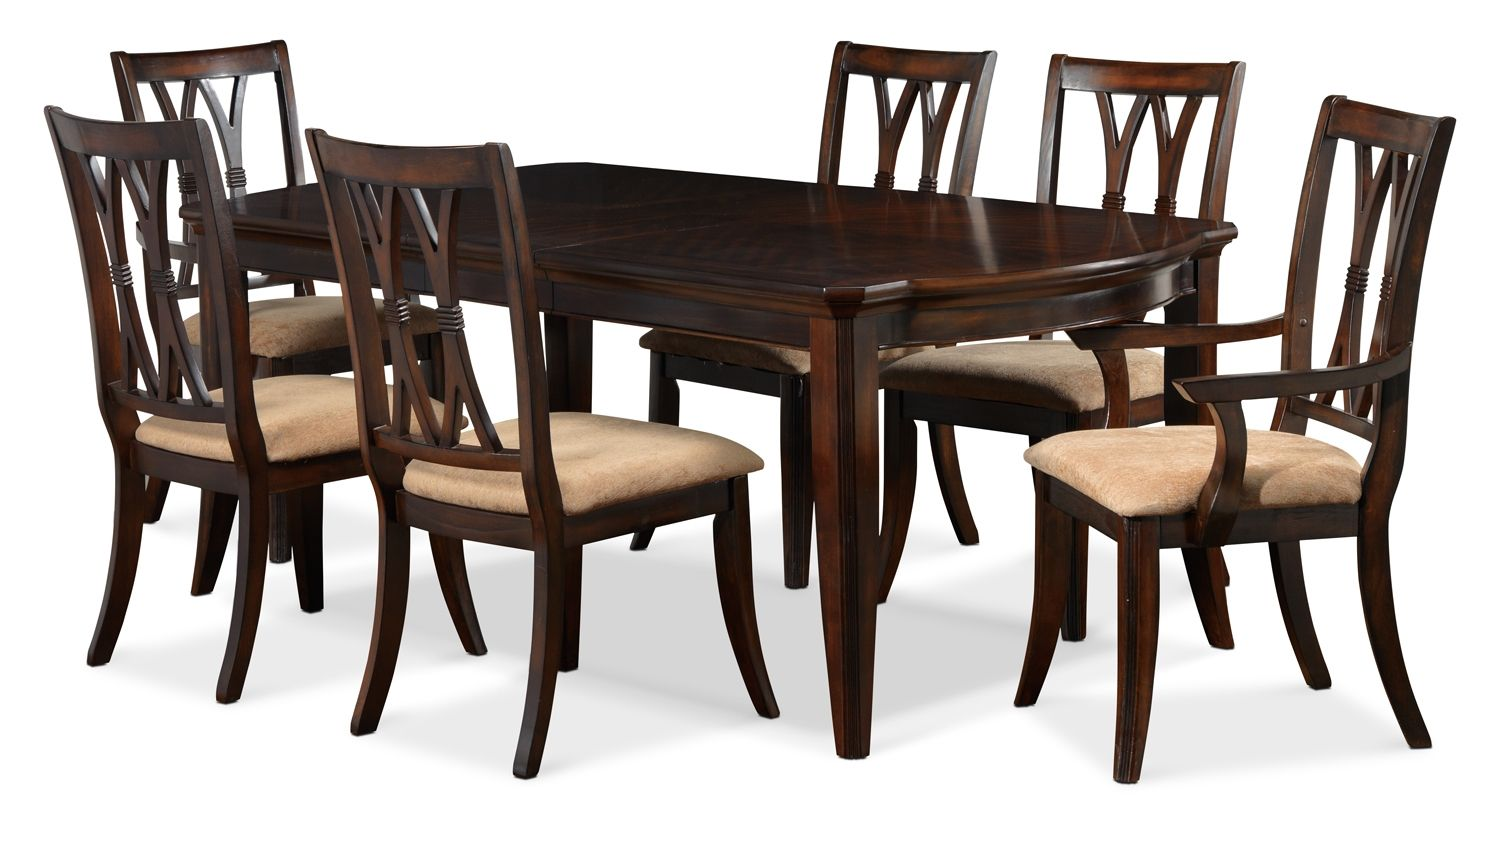 King george dining room 7 pc dining set leon 39 s - King furniture dining table ...